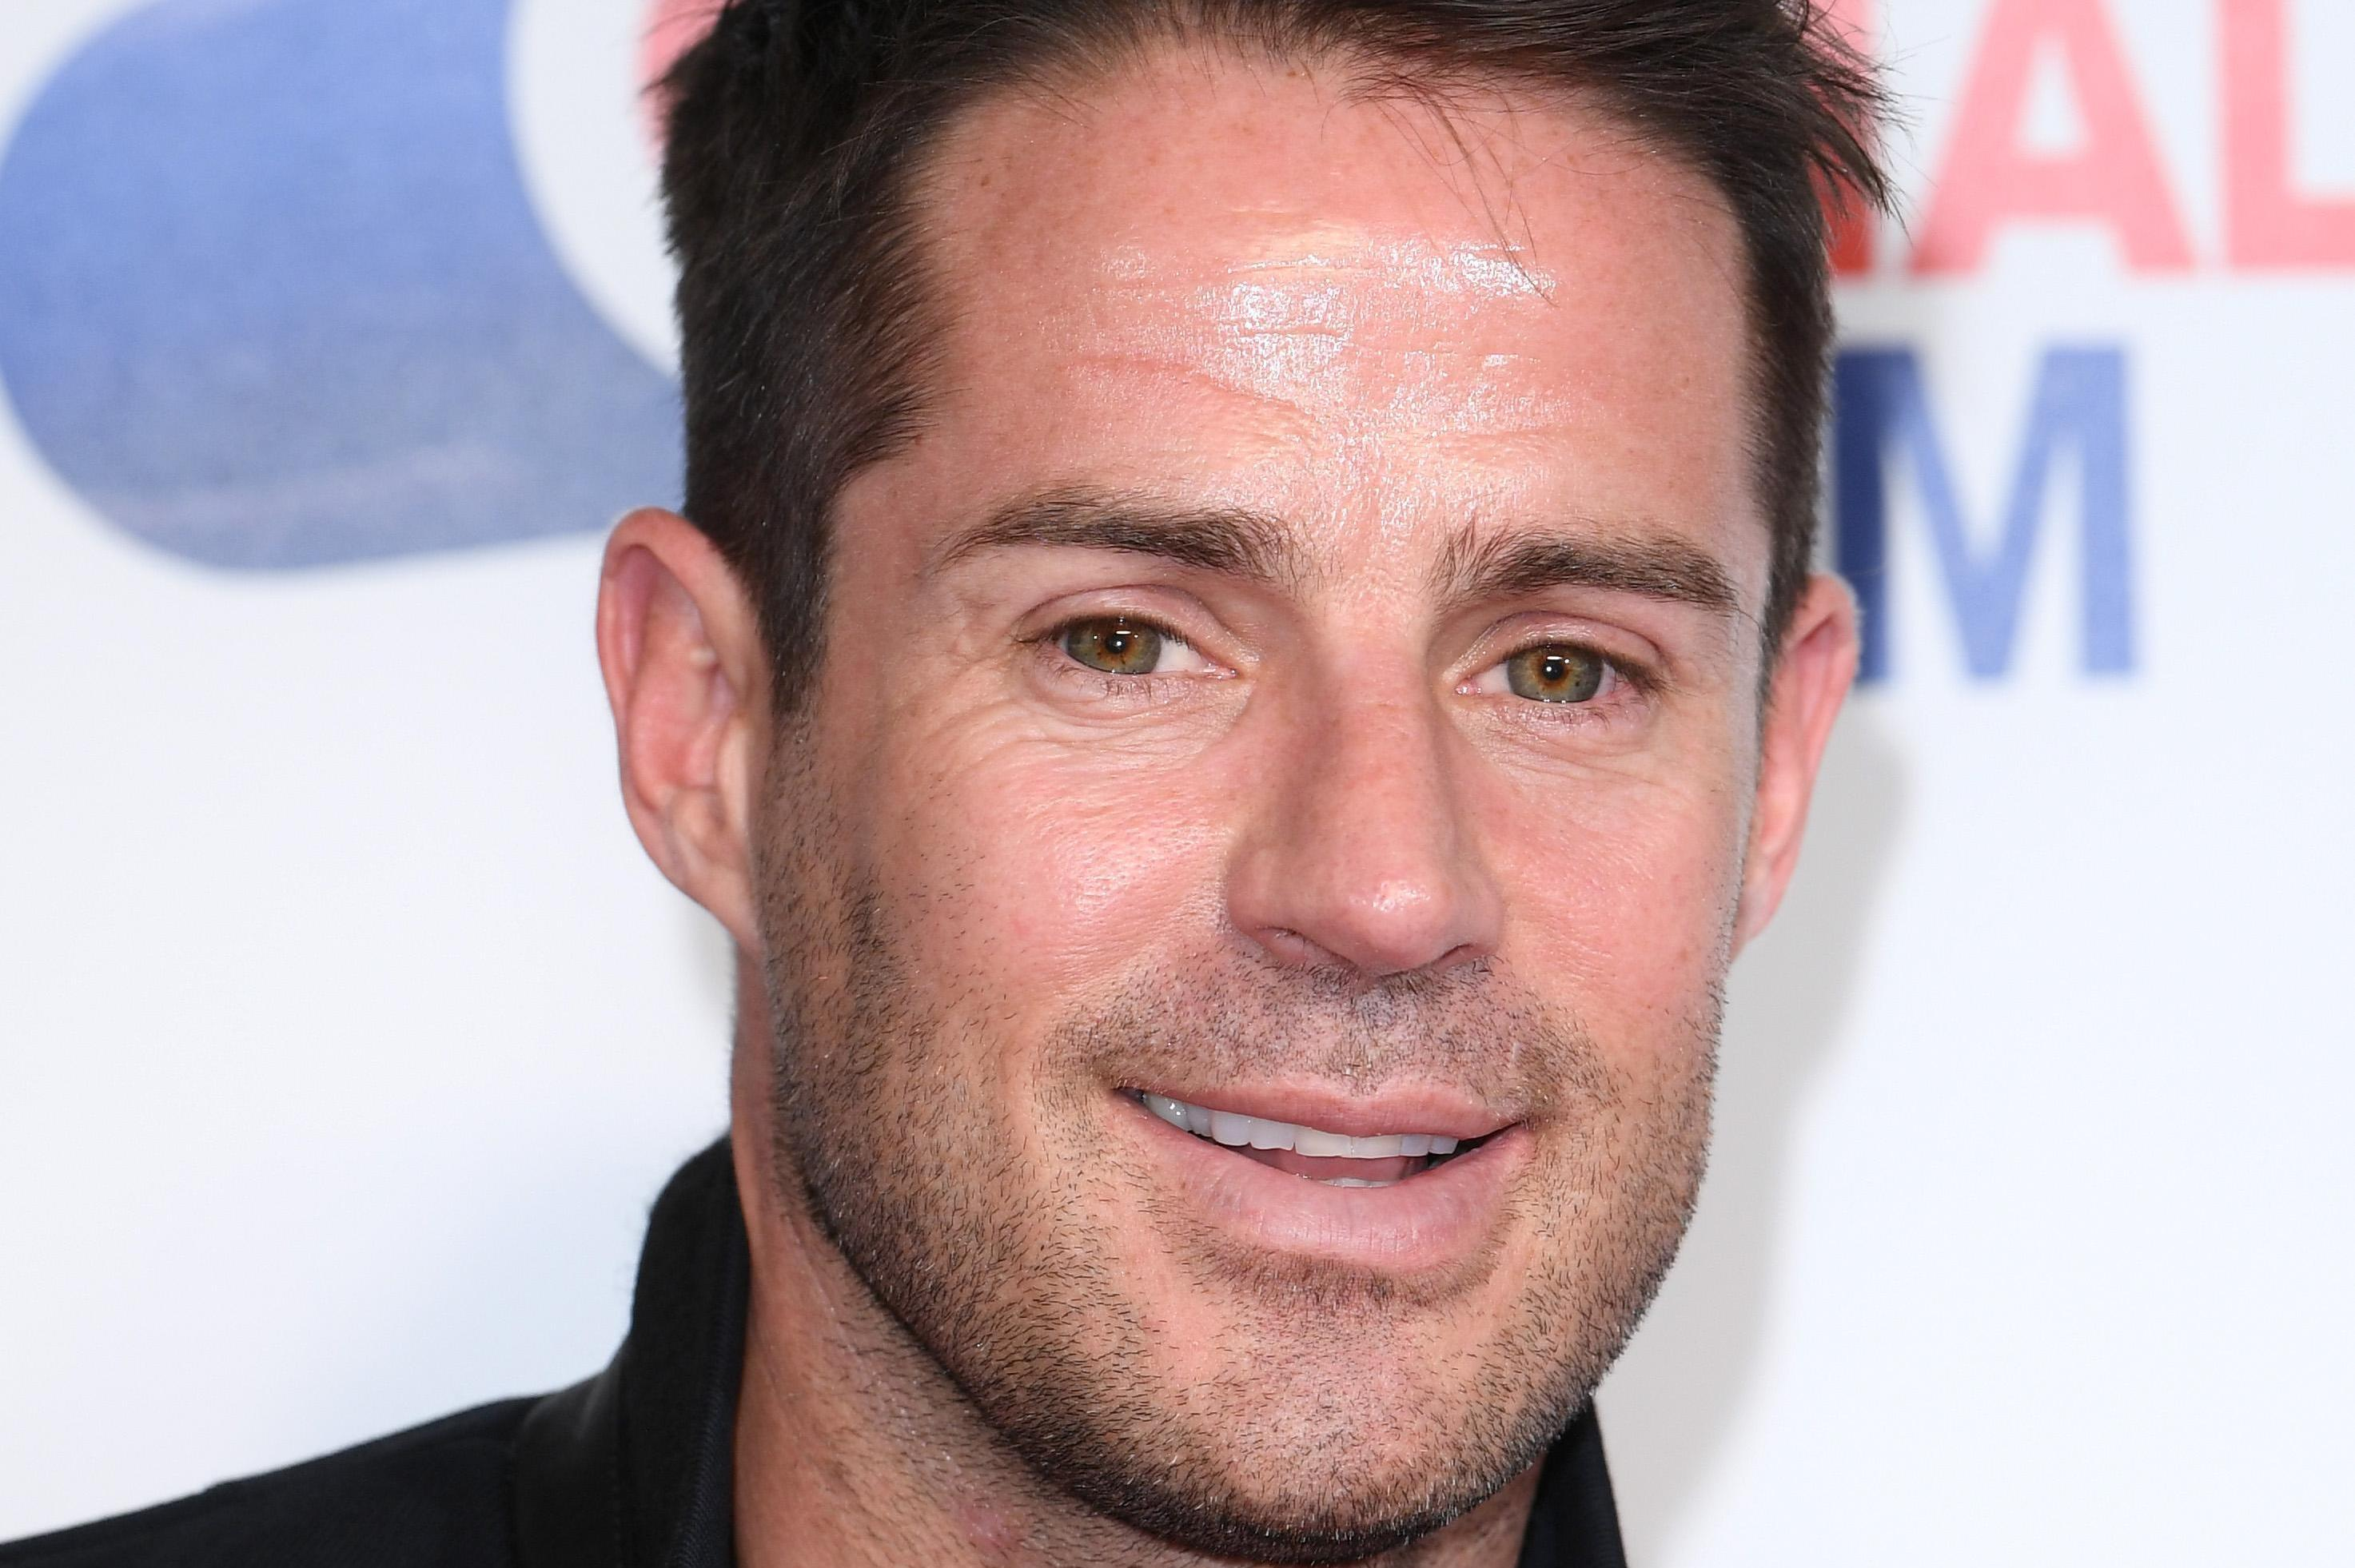 Jamie Redknapp skips I'm A Celebrity final and parties at Jingle Bell Ball – despite dad Harry being favourite to win